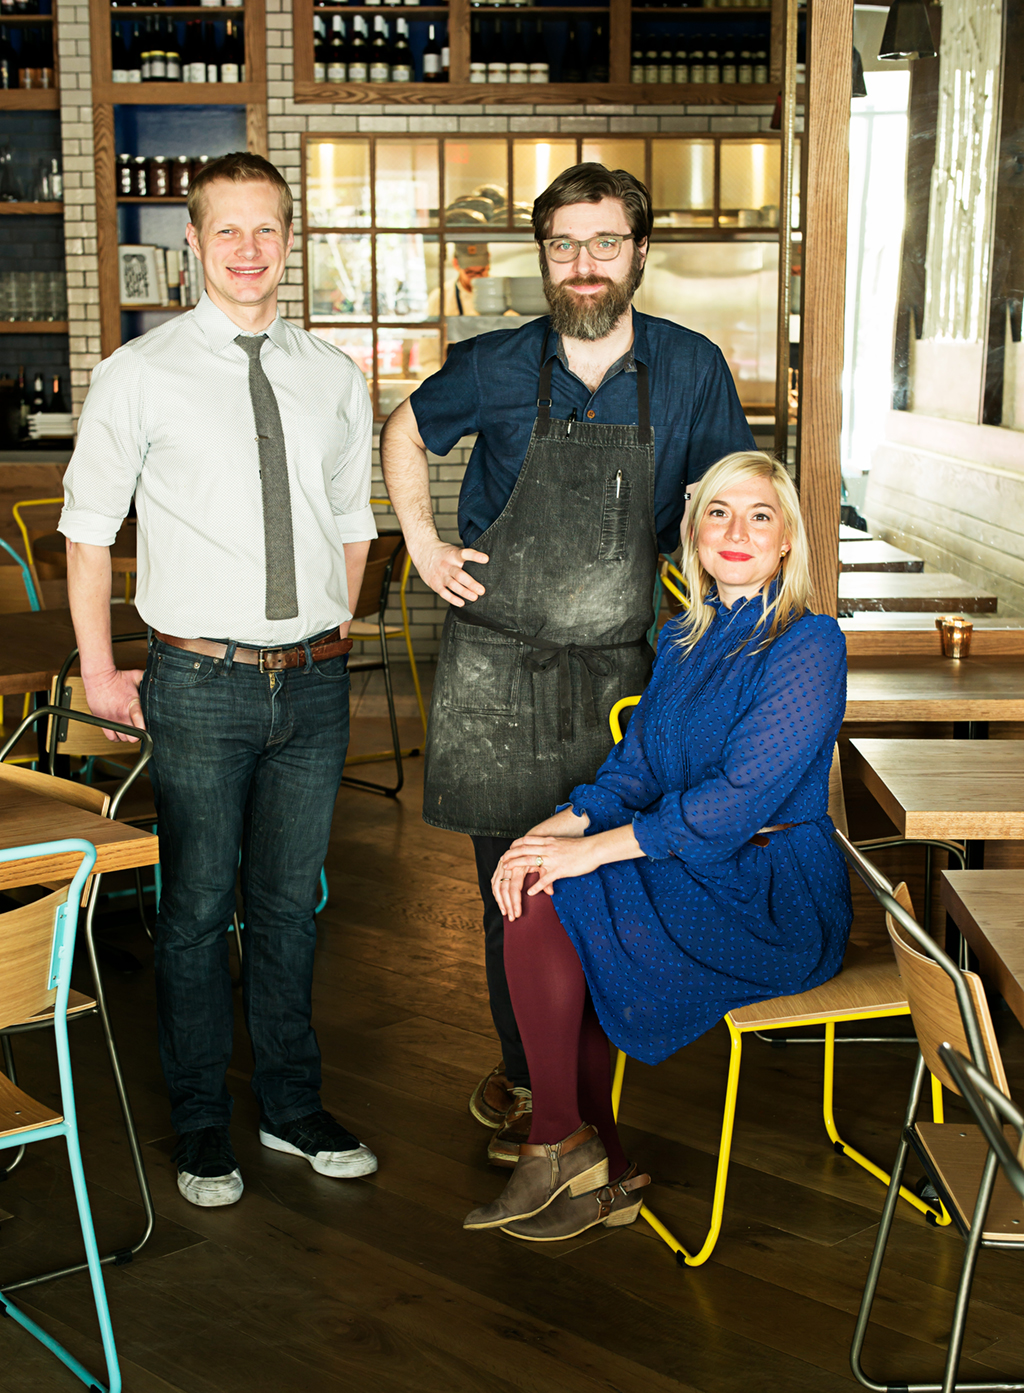 Left to right, Tail Up Goat owners: Bill Jensen, owner and beverage director; Jon Sybert, owner and chef; Jill Tyler, owner and service director. Photograph by Scott Suchman.